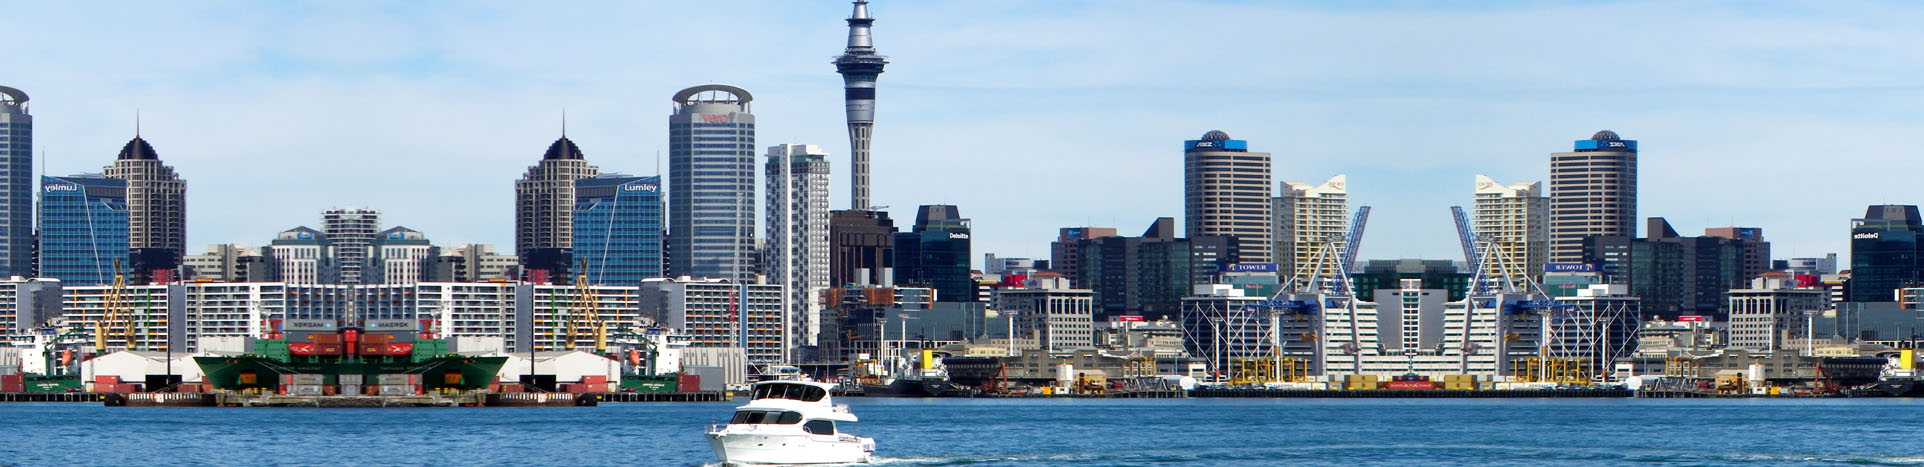 Need a studentdorm in New Zealand?| We're ready to deliver!